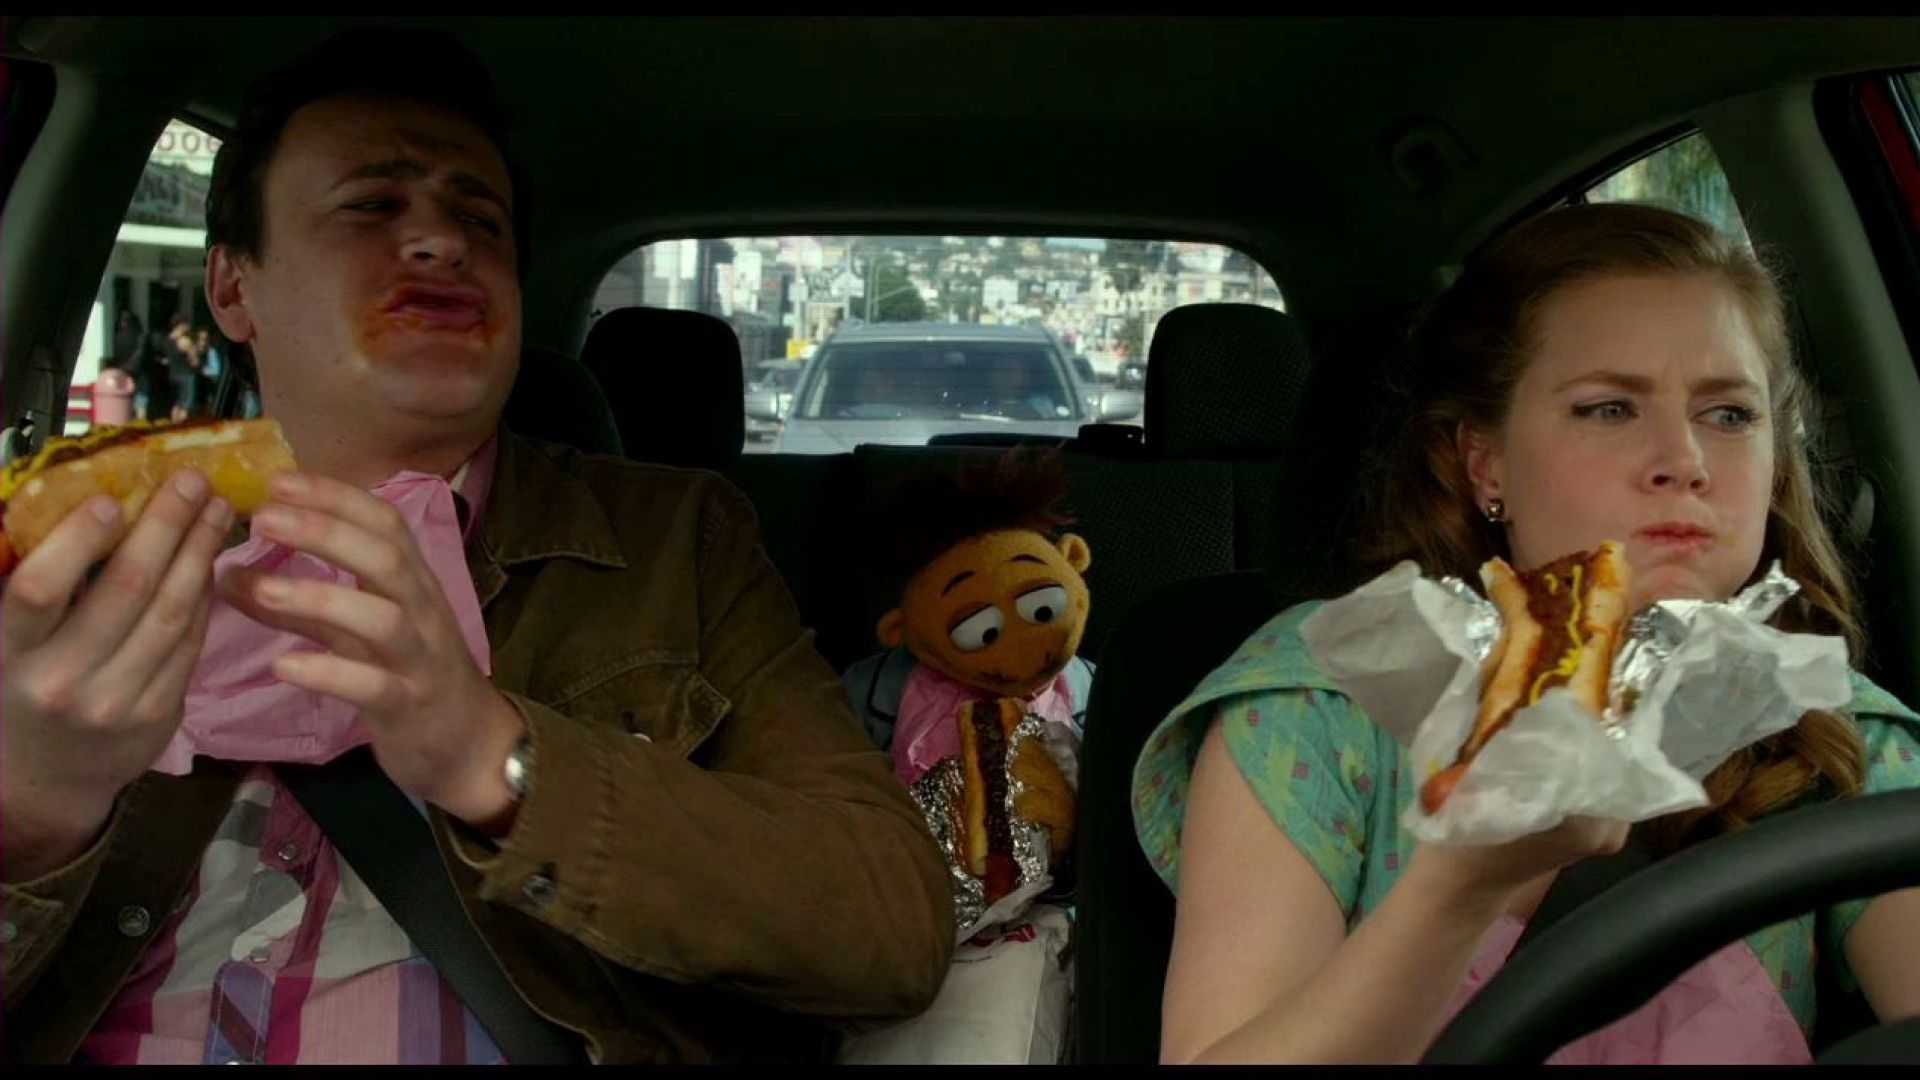 Walter, Jason Segel and Amy Adams stop to get hot dogs in The Muppets